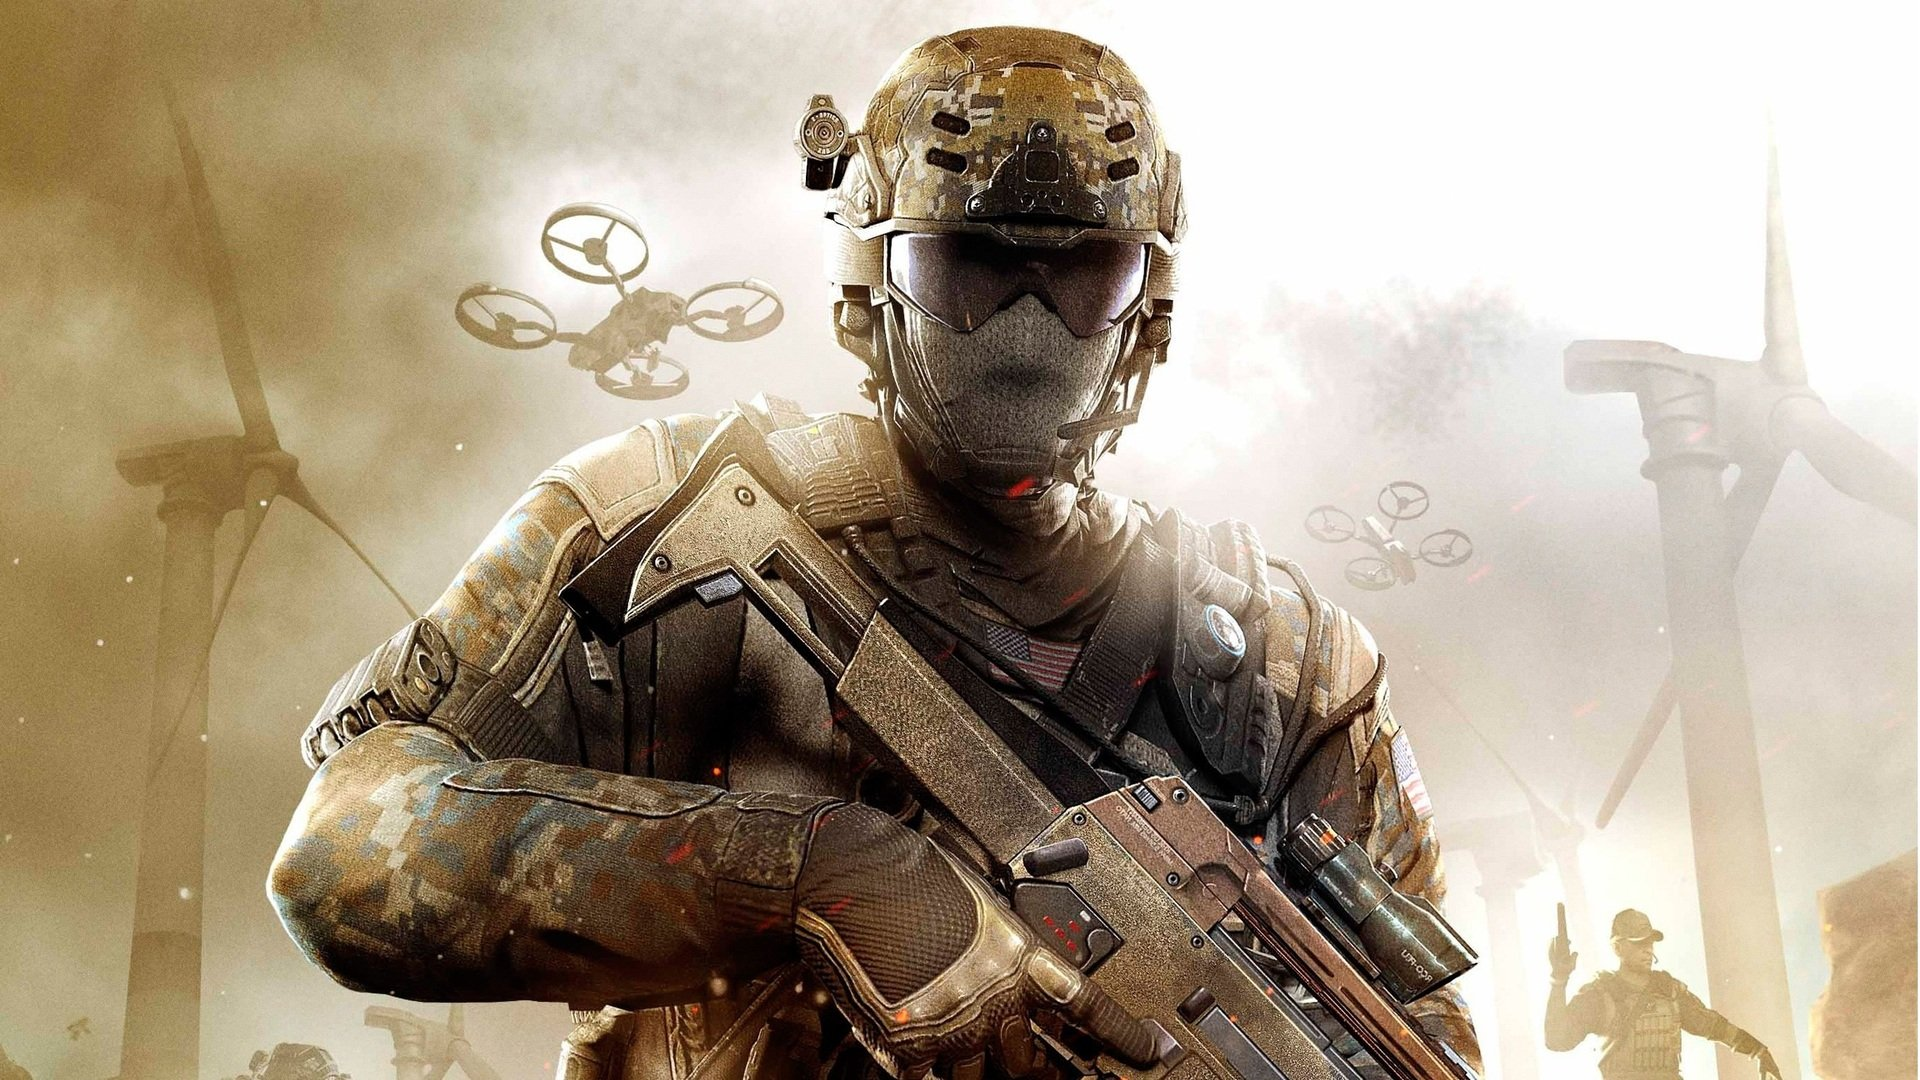 games cool game cool bo2 pics call of duty black ops 2 wallpaper call 1920x1080